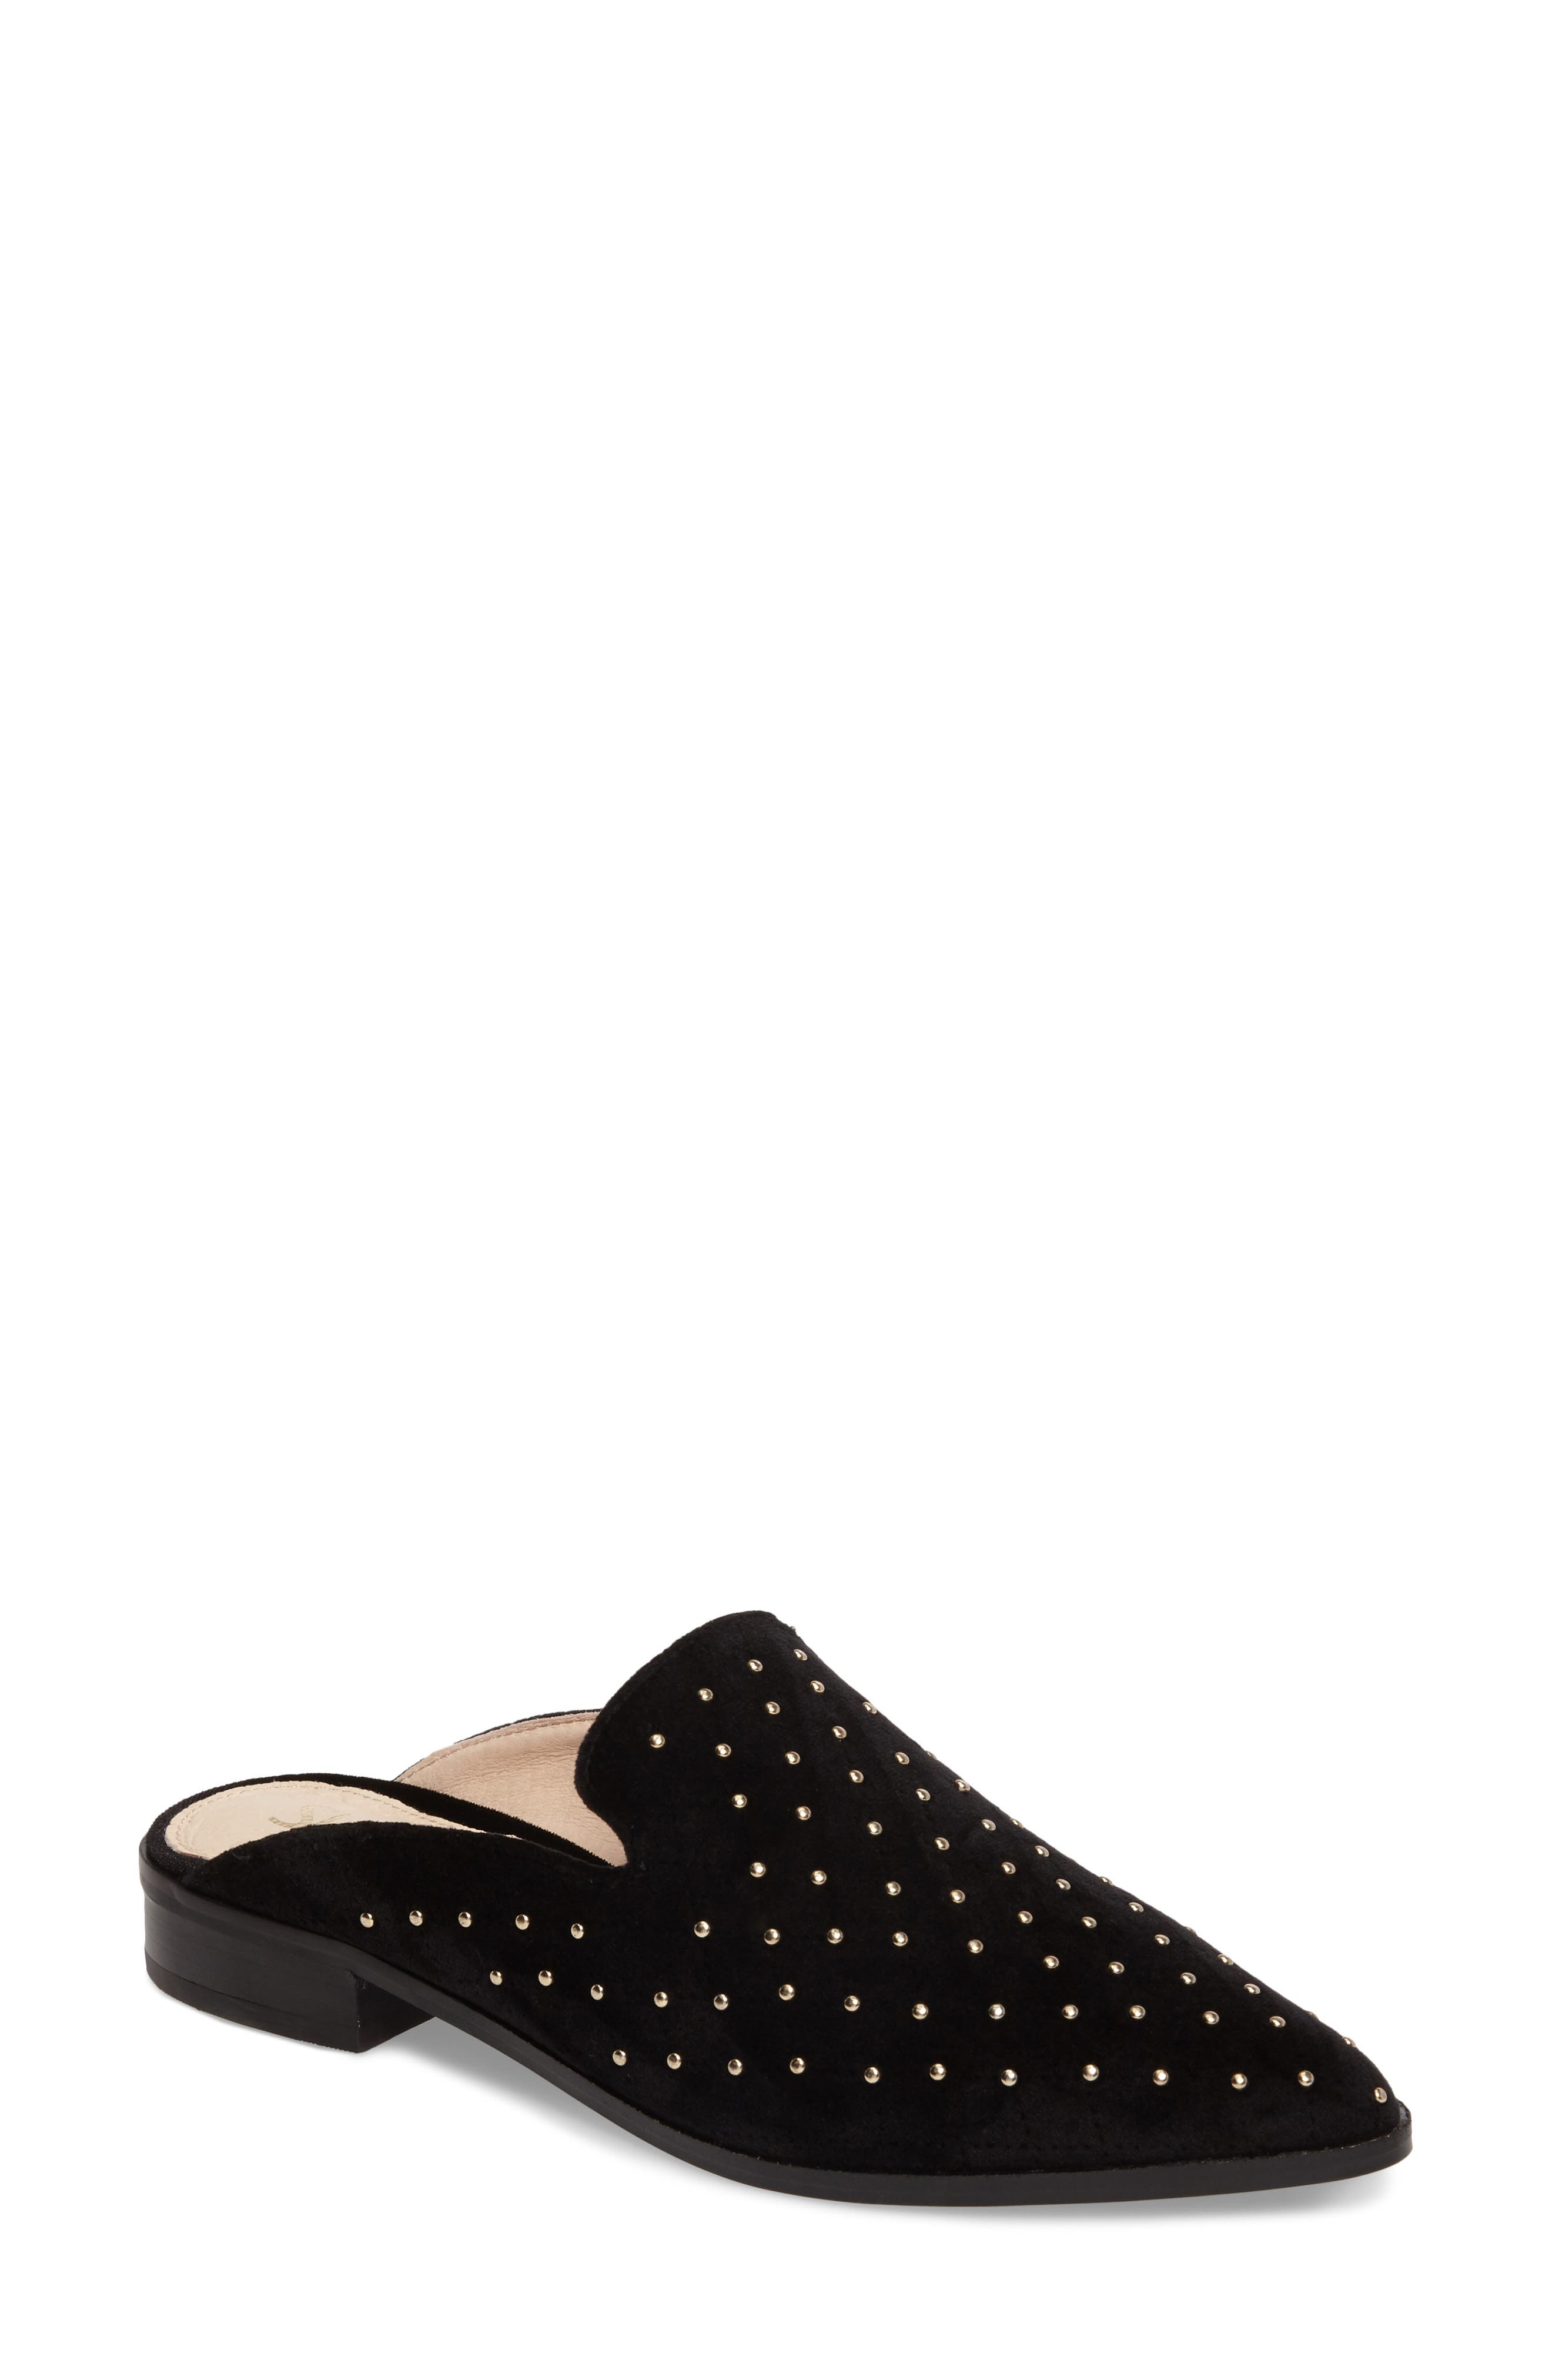 SHELLYS LONDON Fantasia Loafer Mule